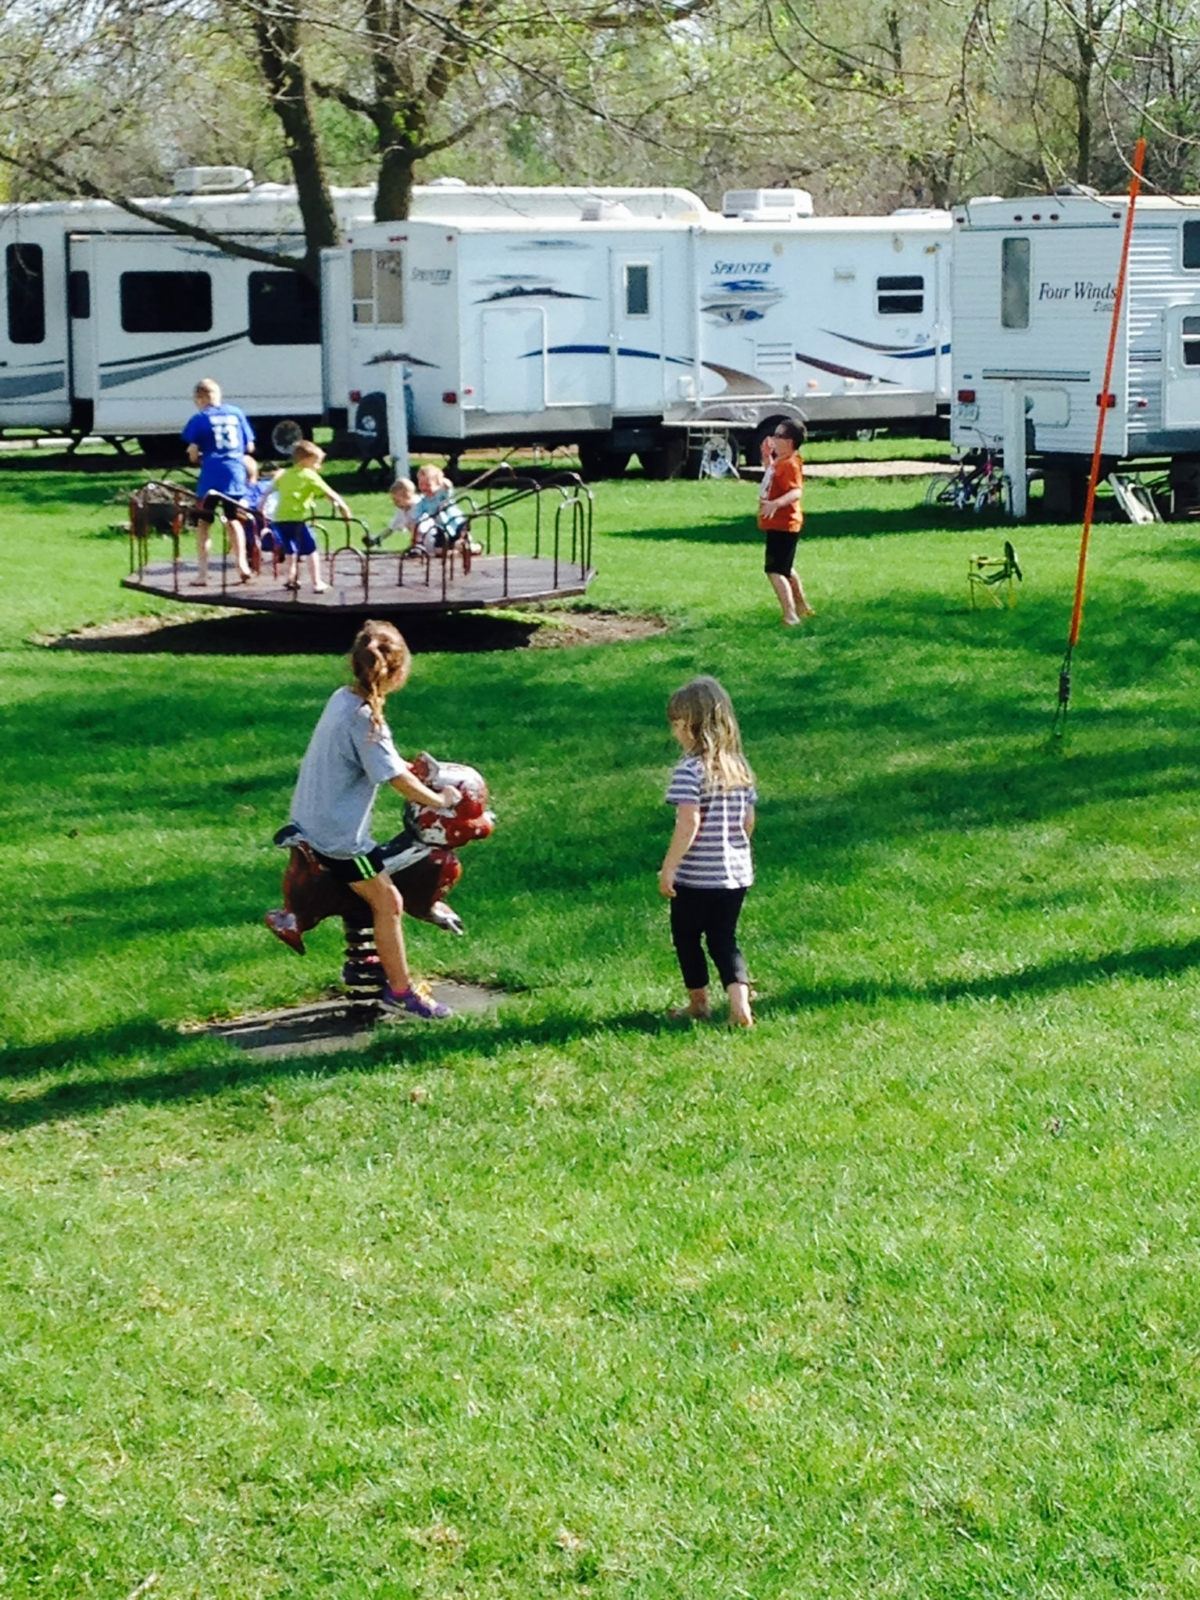 Playground at Eastside Acres Campground for sale